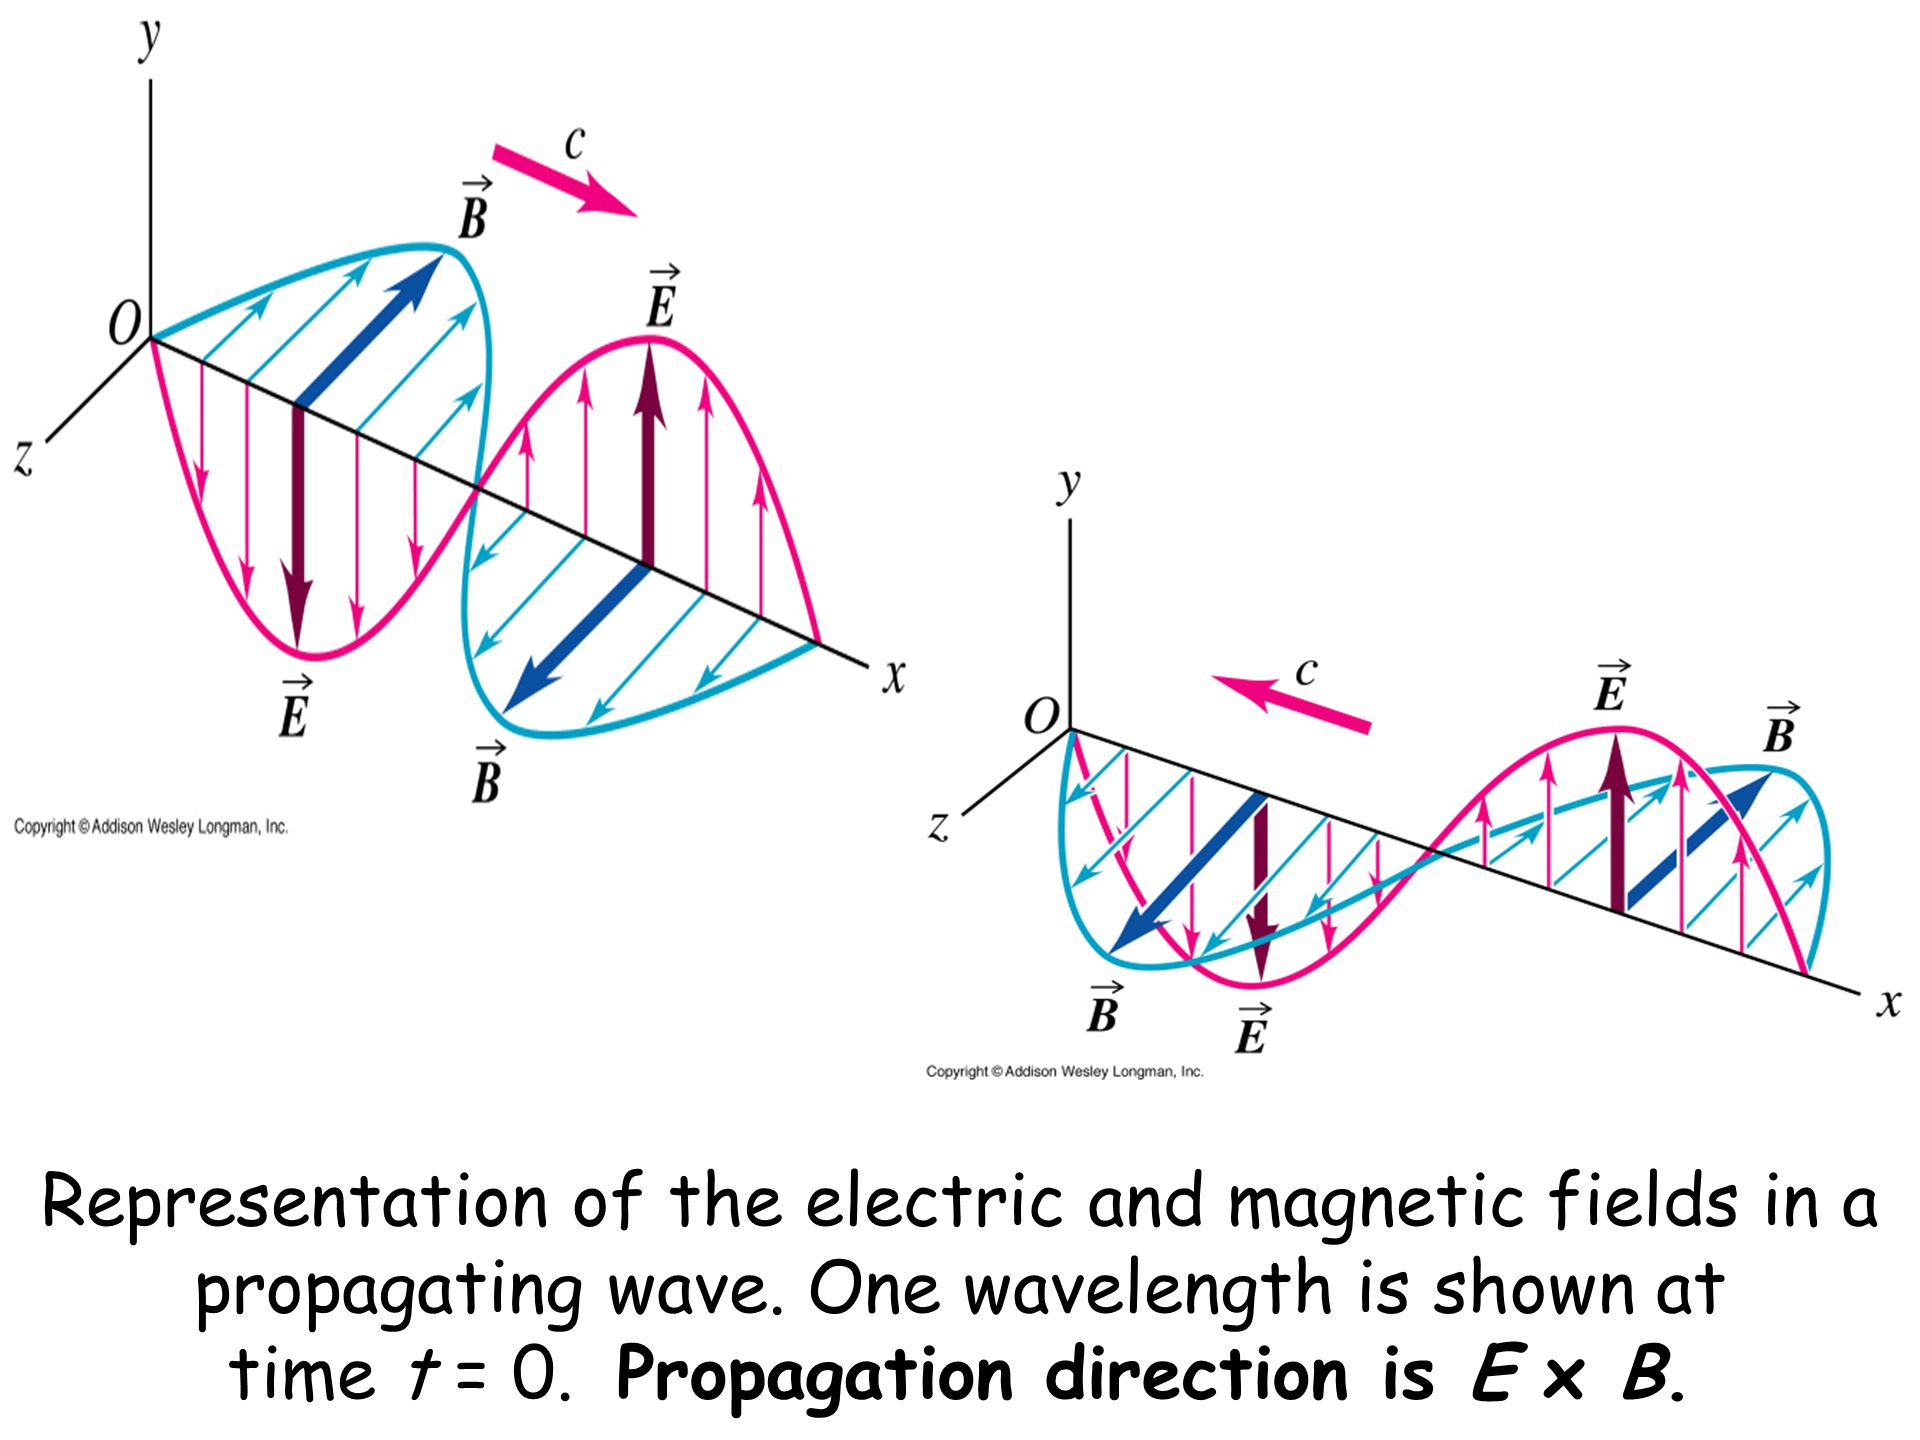 Representation of the electric and magnetic fields in a propagating wave.